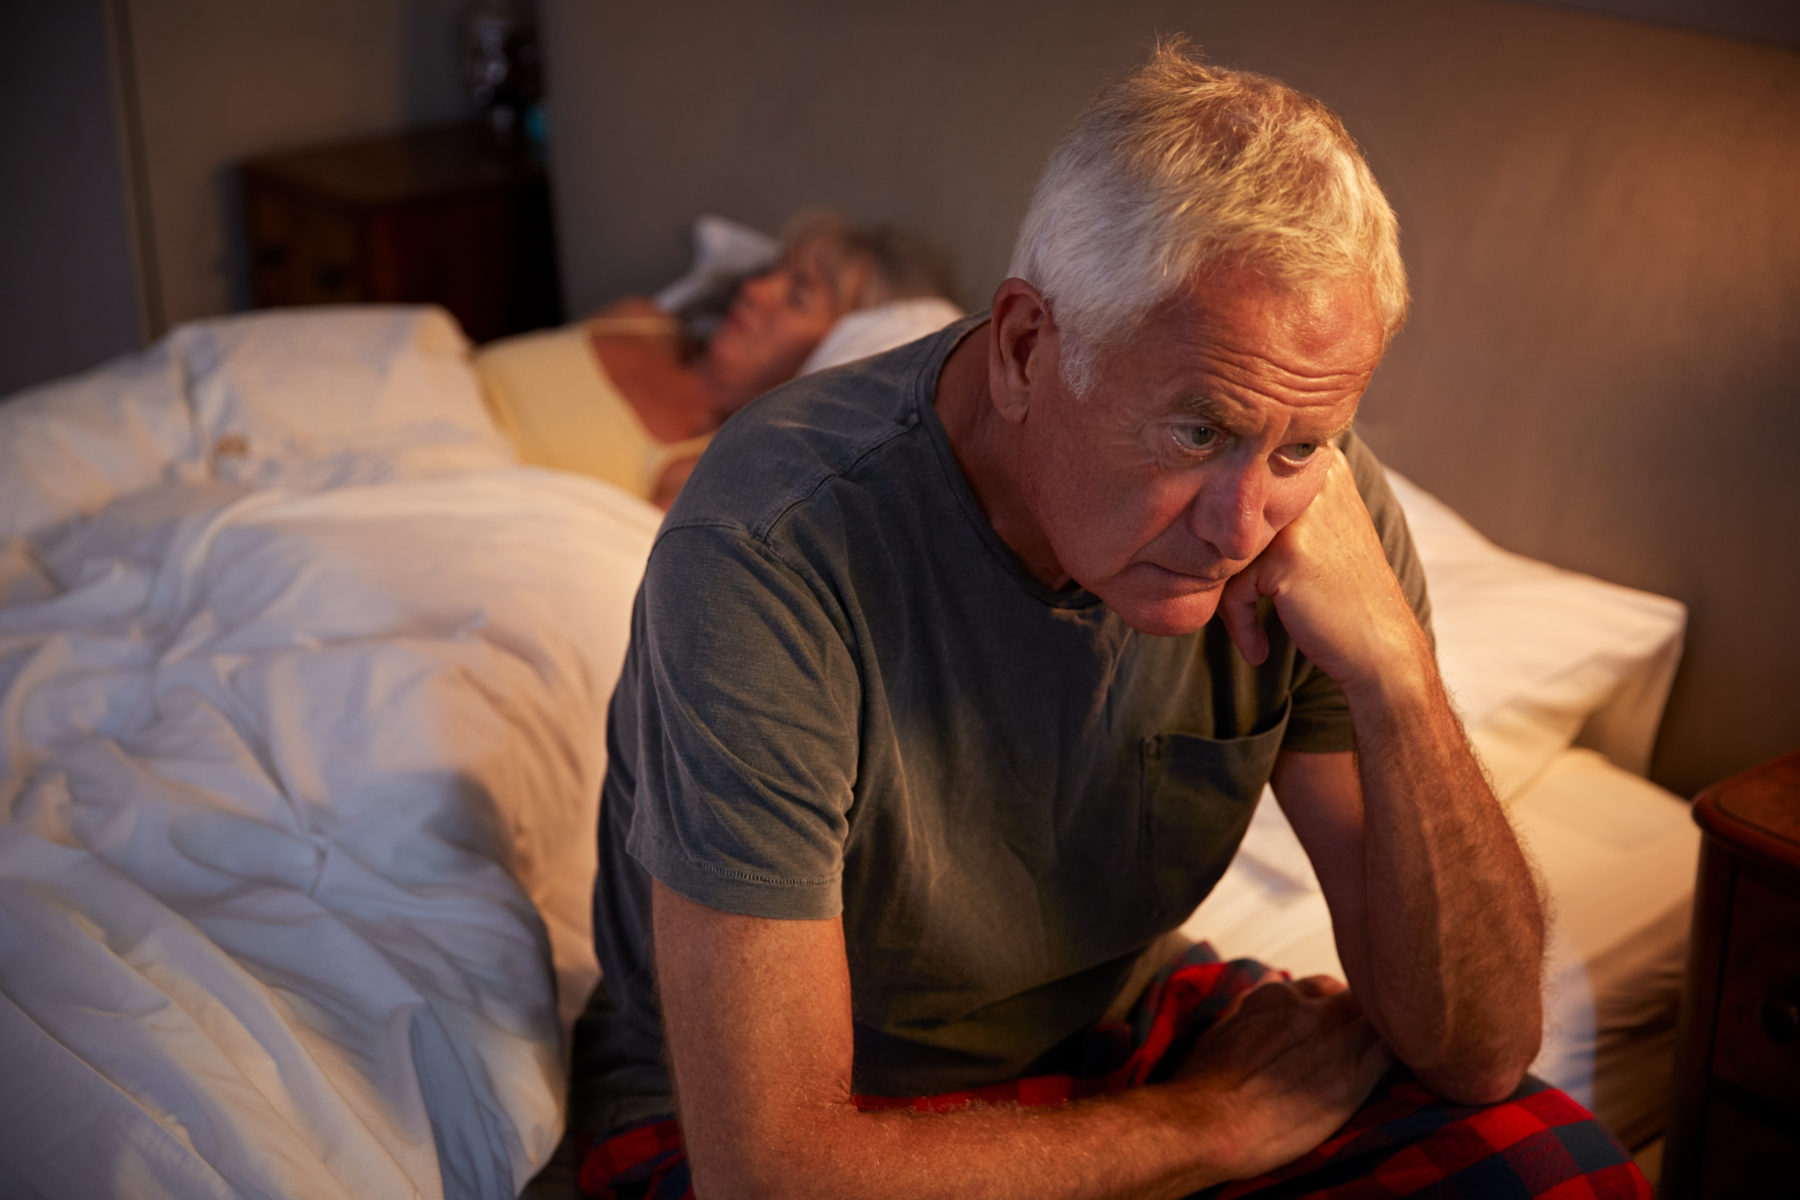 Mature man awake at night with prostate problems